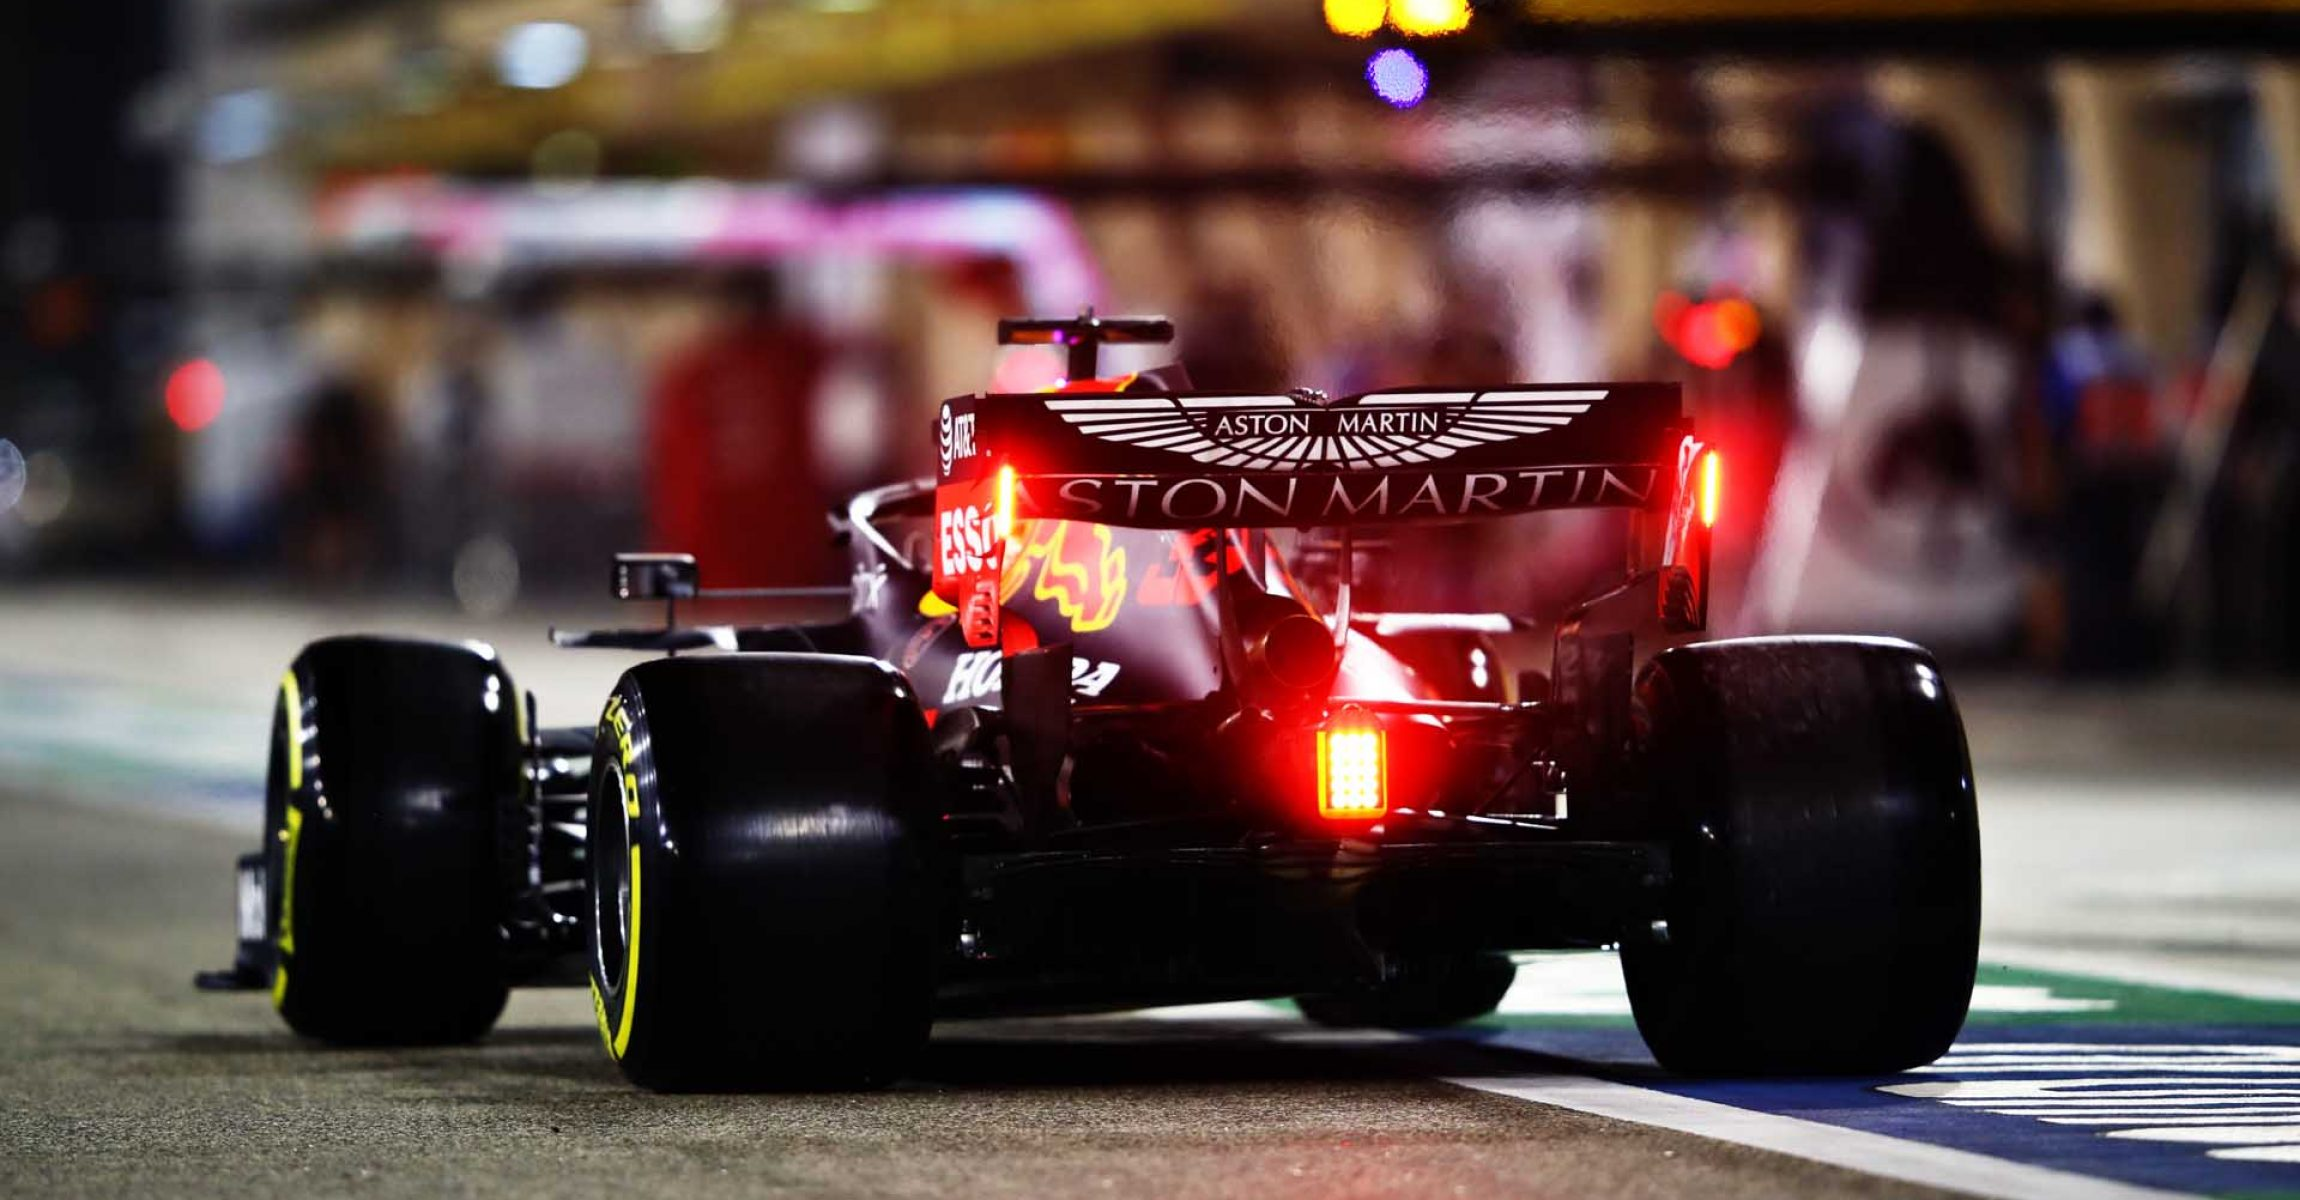 BAHRAIN, BAHRAIN - NOVEMBER 28: Max Verstappen of the Netherlands driving the (33) Aston Martin Red Bull Racing RB16 in the Pitlane during qualifying ahead of the F1 Grand Prix of Bahrain at Bahrain International Circuit on November 28, 2020 in Bahrain, Bahrain. (Photo by Mark Thompson/Getty Images)